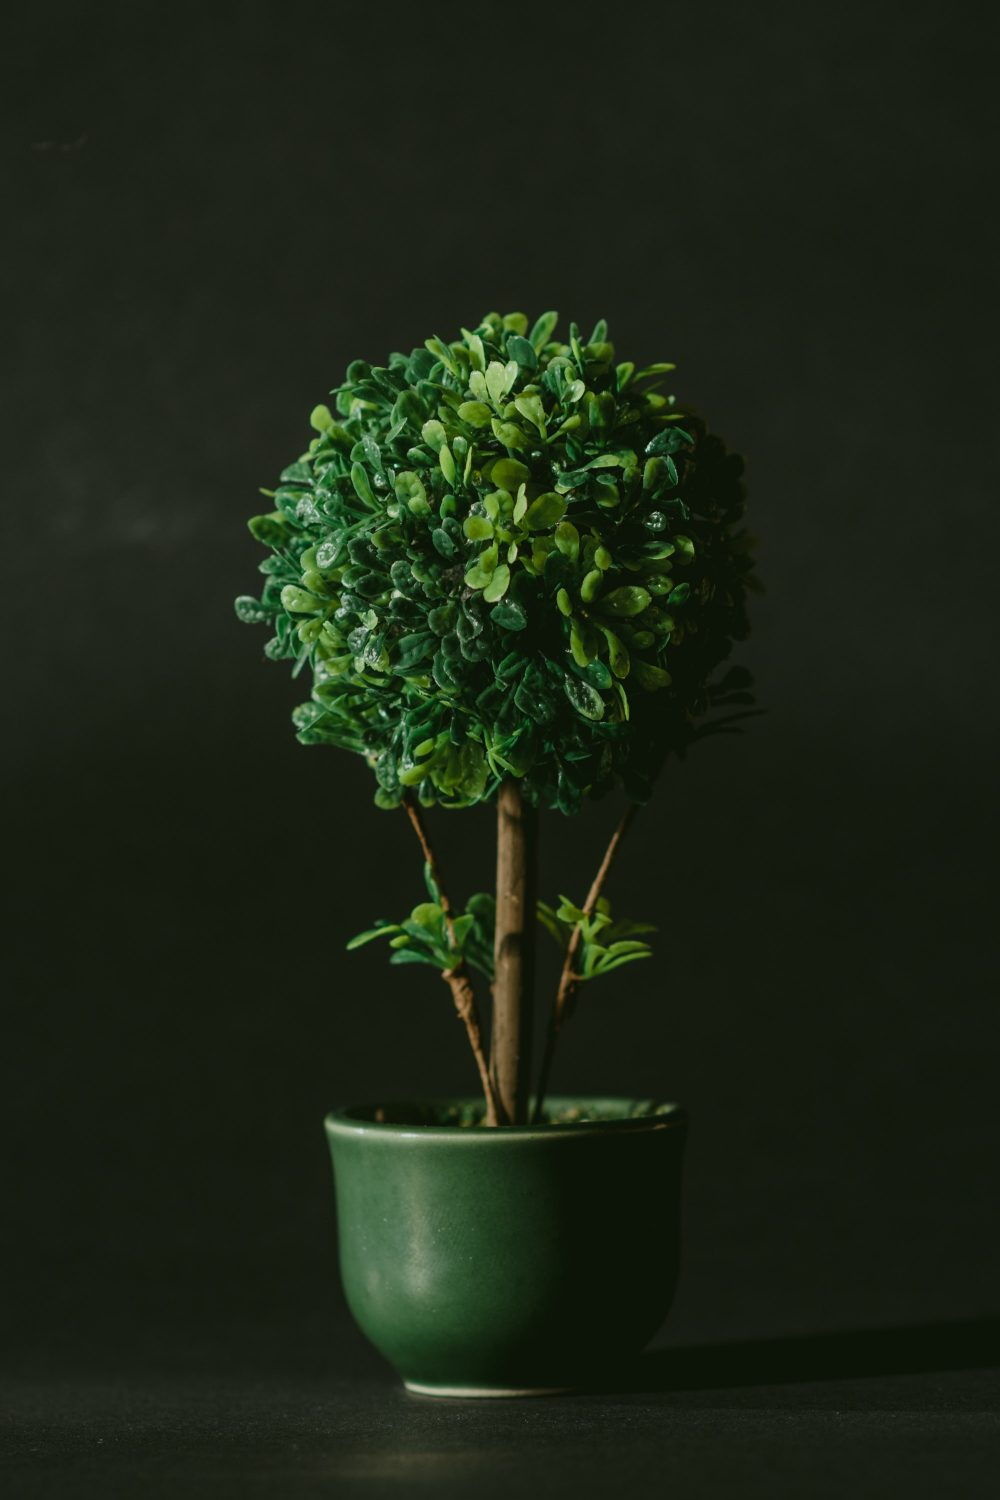 How To Grow And Maintain Indoor Topiary A Complete Guide Trimhedge Hedge Trimming Topiary